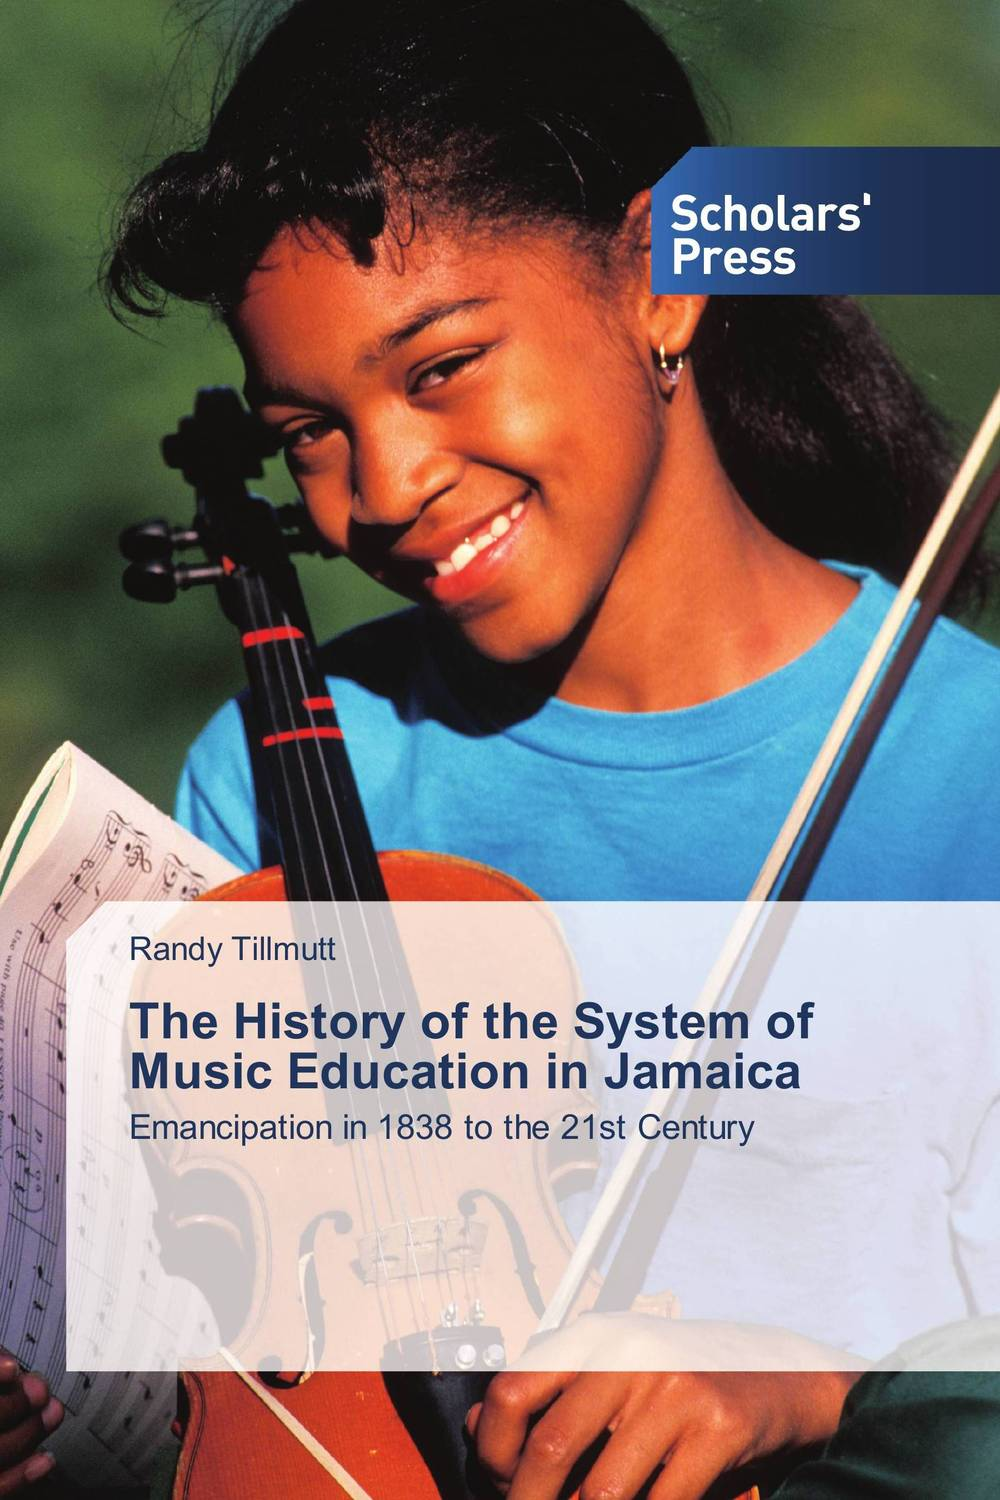 The History of the System of Music Education in Jamaica m3 m4 m5 steel head screws bolts nuts hex socket head cap and nuts assortment button head allen bolts hexagon socket screws kit